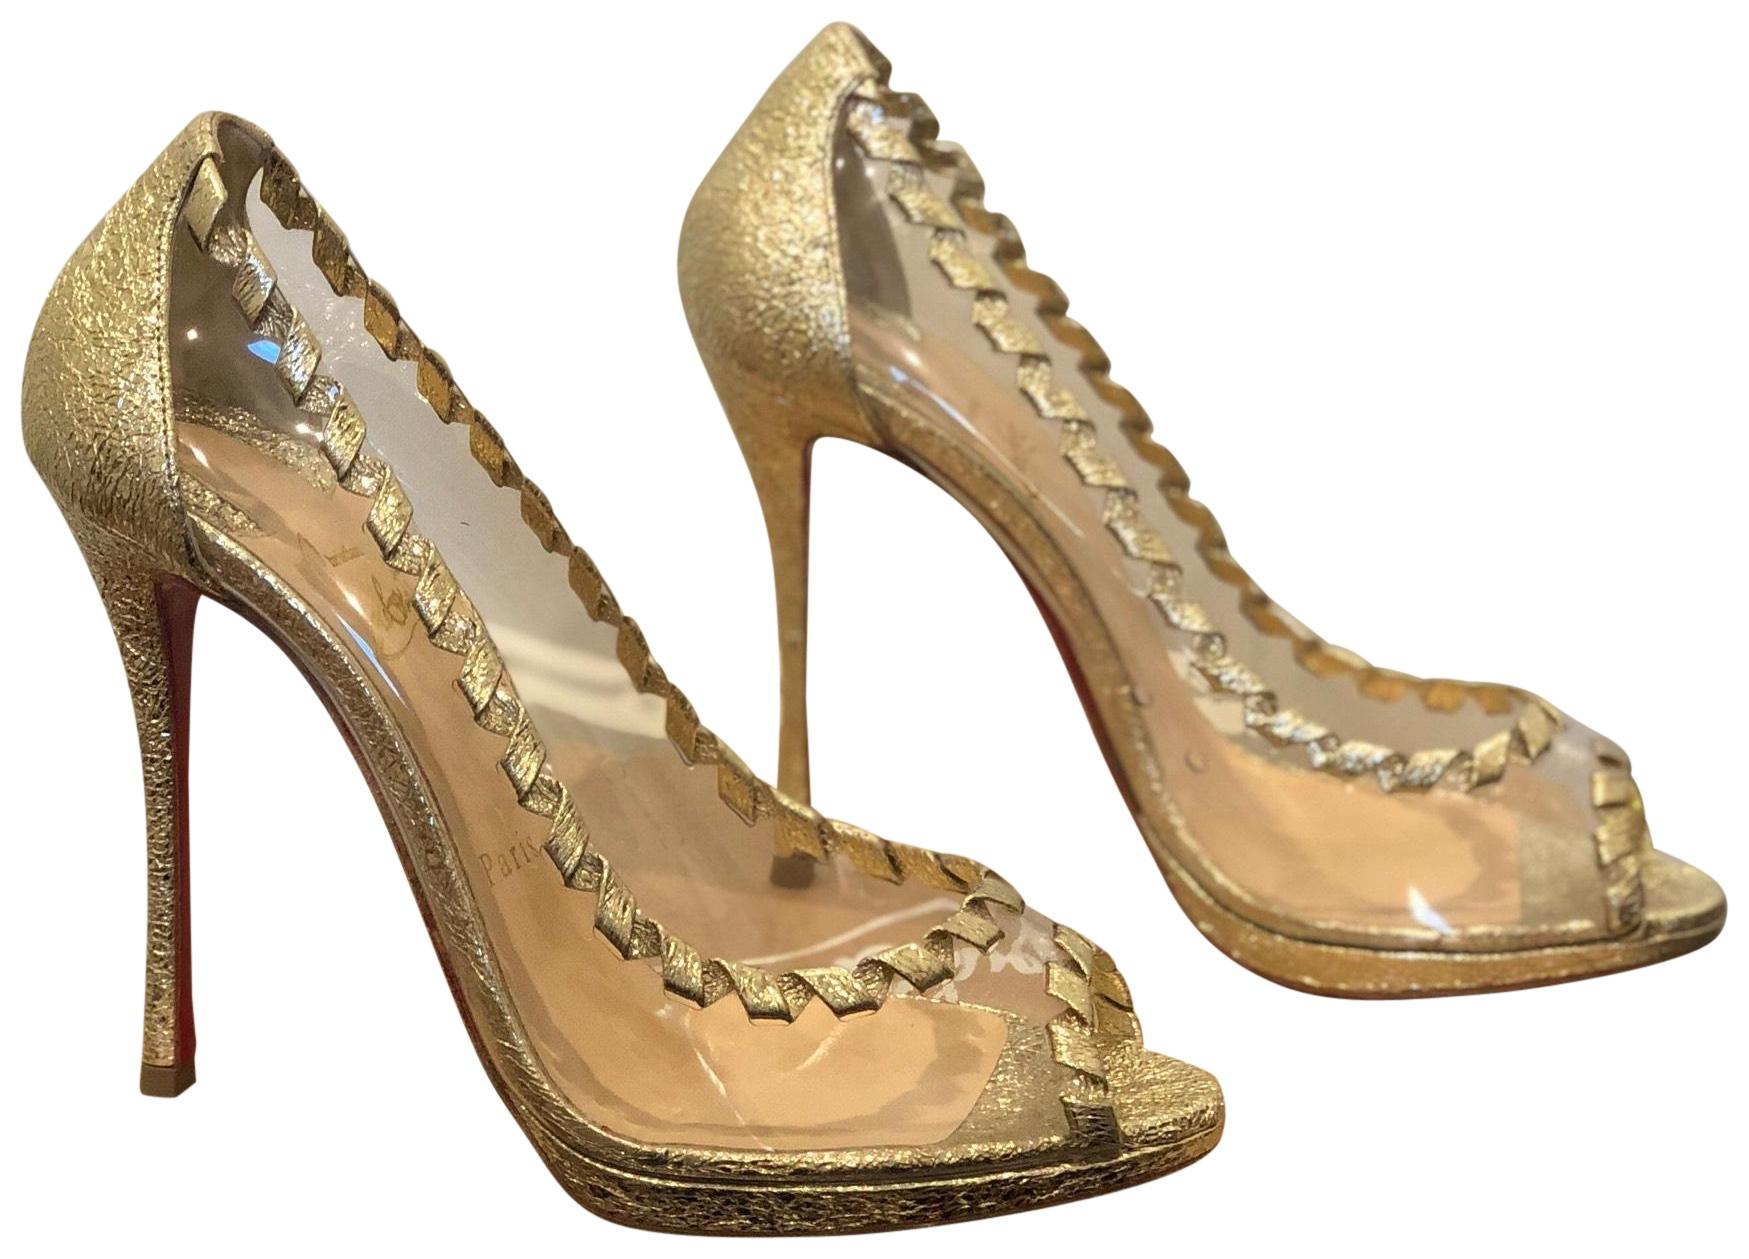 Christian Louboutin Gold Heels Pumps Size EU 38.5 (Approx. US 8.5) Regular (M, B)